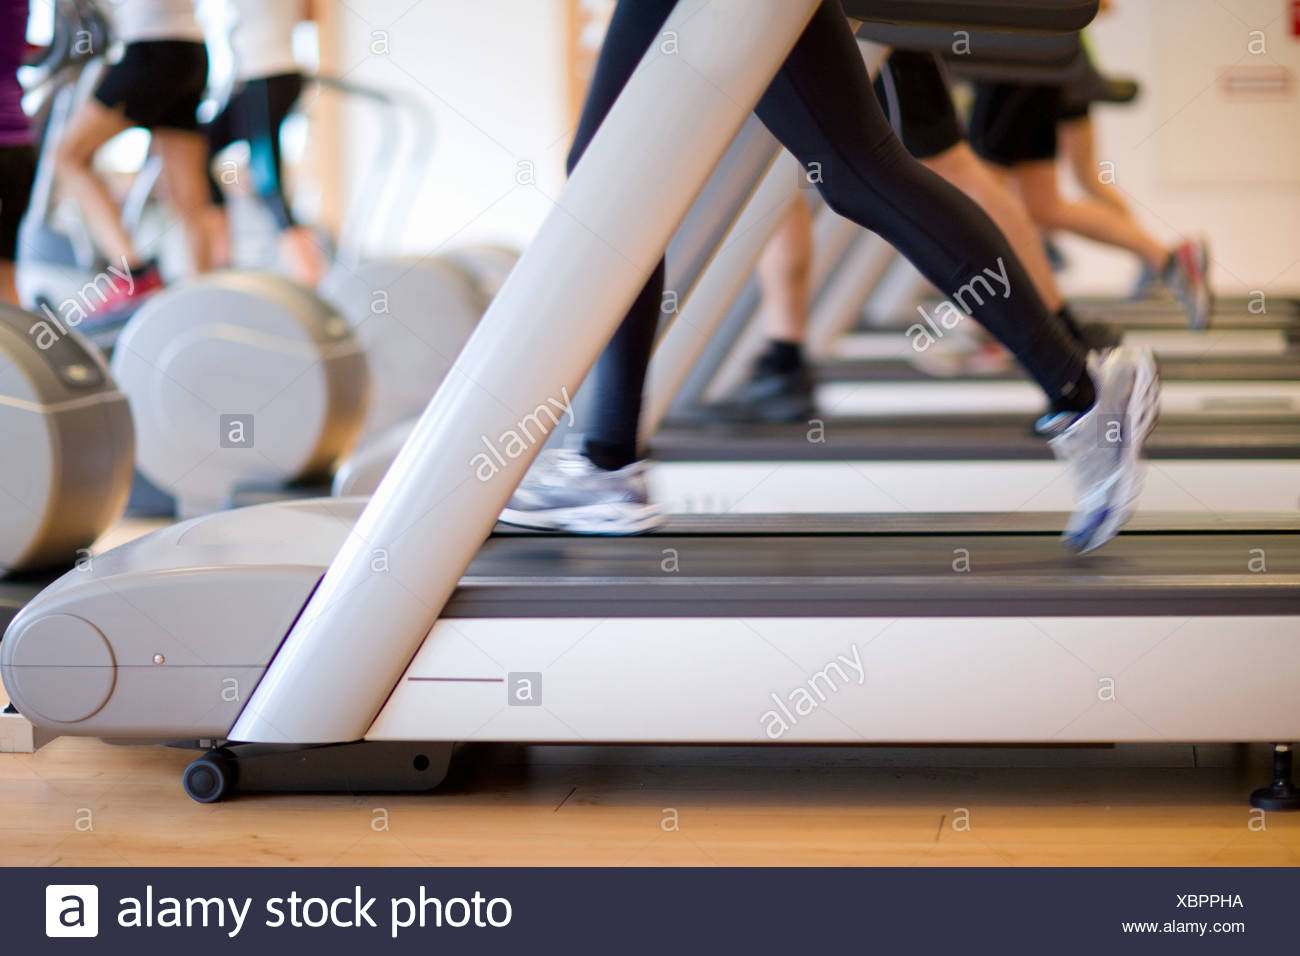 Legs of people running on treadmills in gym - Stock Image